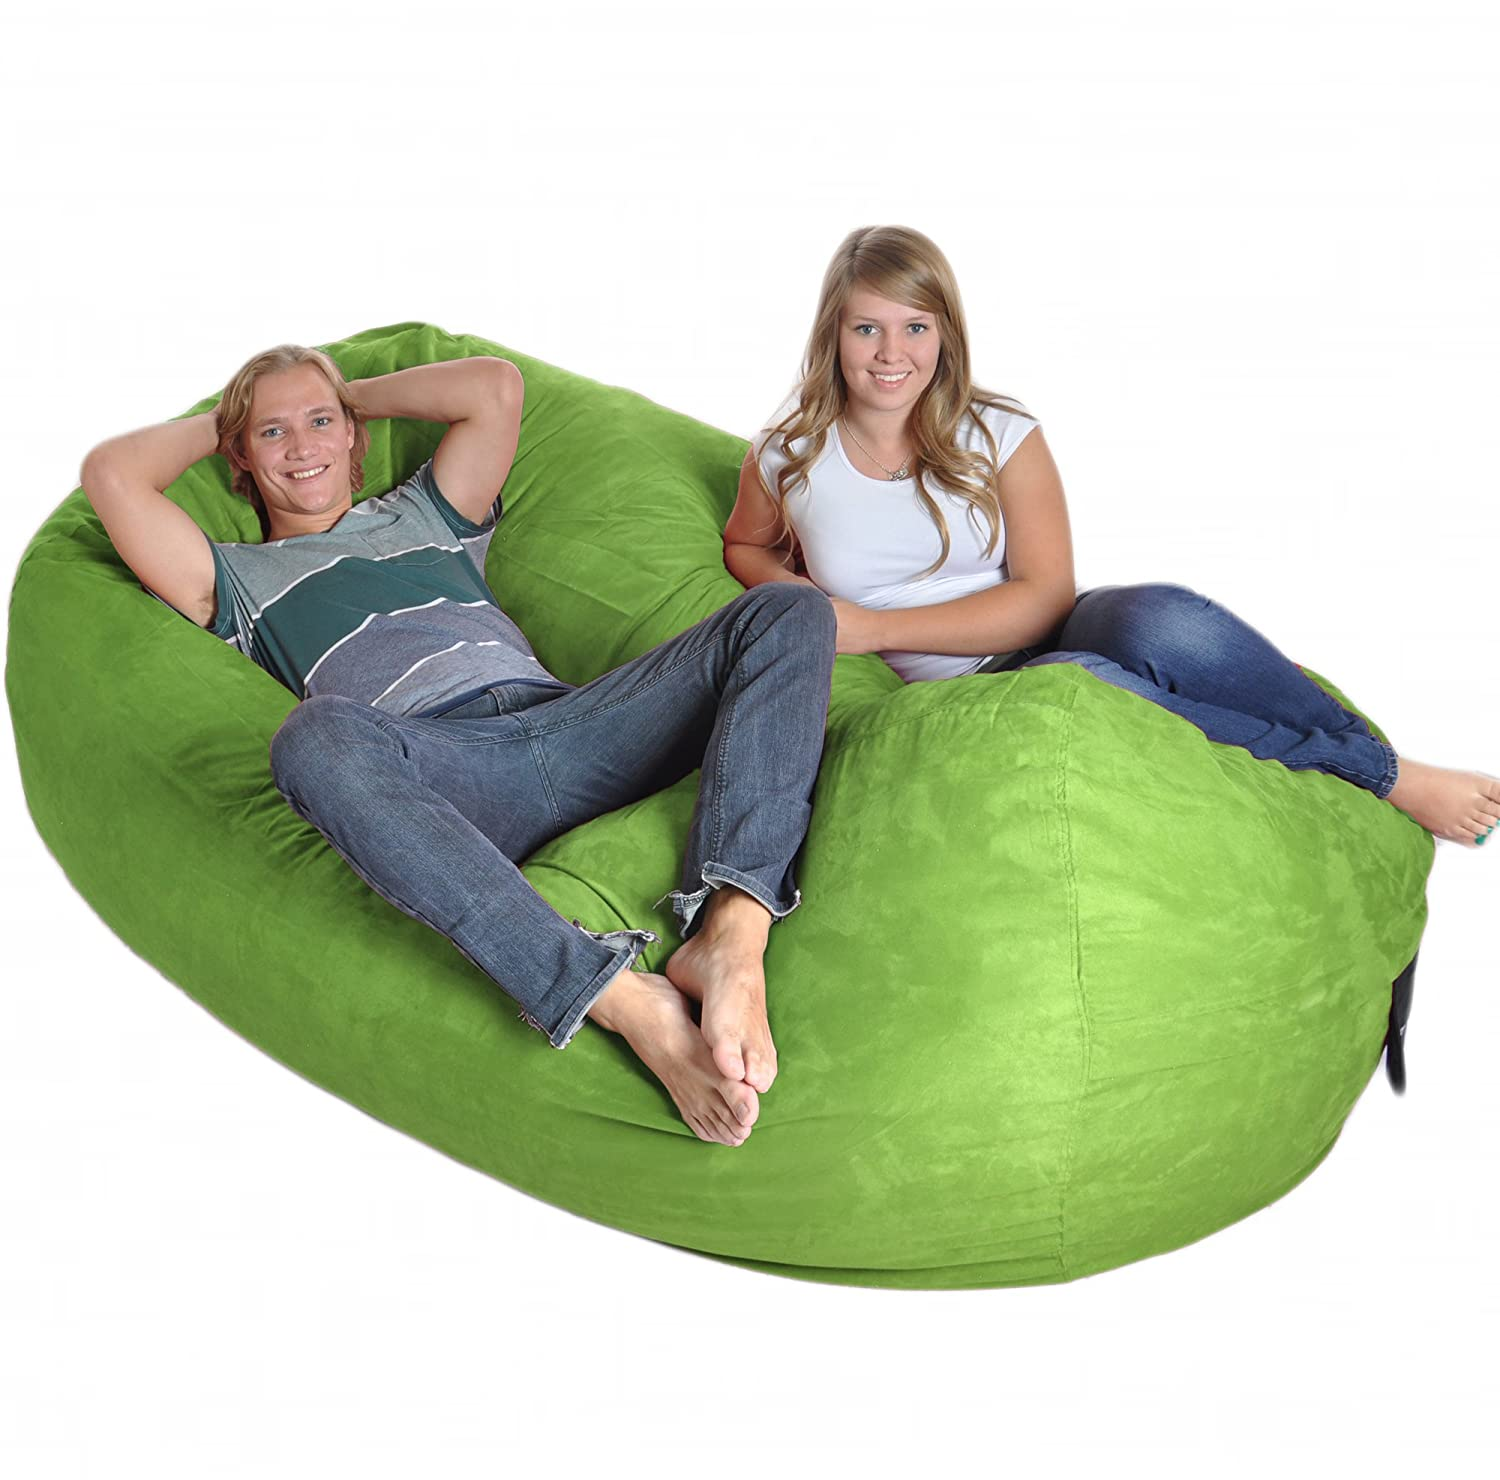 8' Oval Lime Green SLACKER sack foam Bean Bag Couch XXL Beanbag Chair